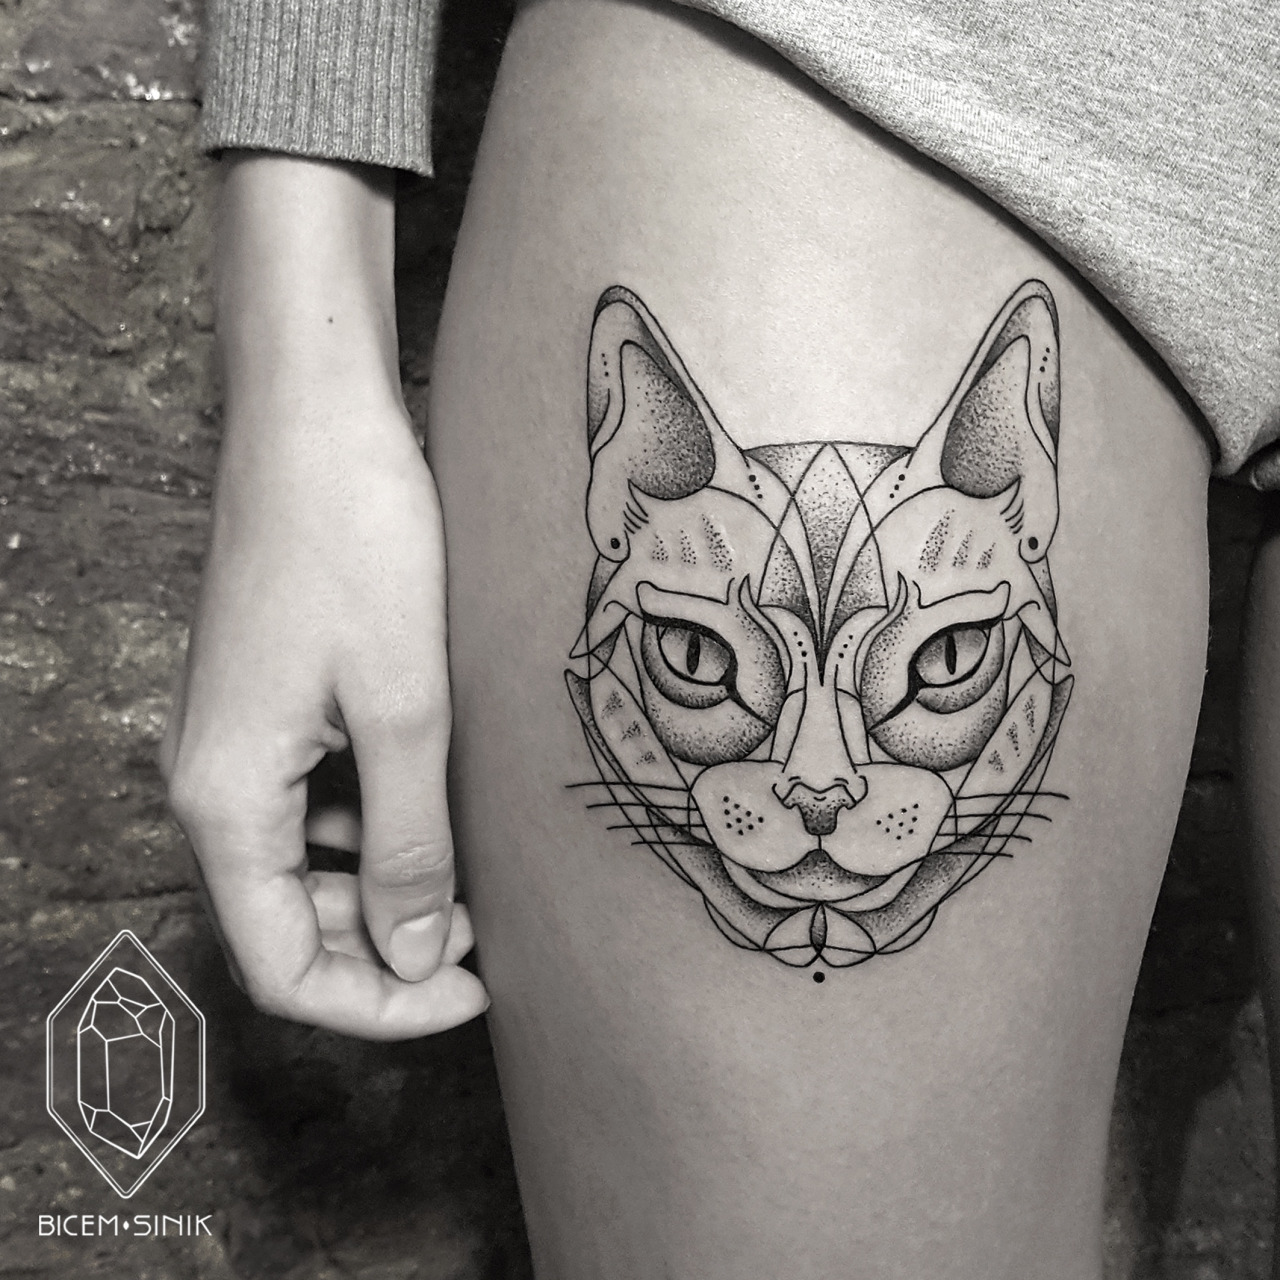 bicem sinik tattoo #15